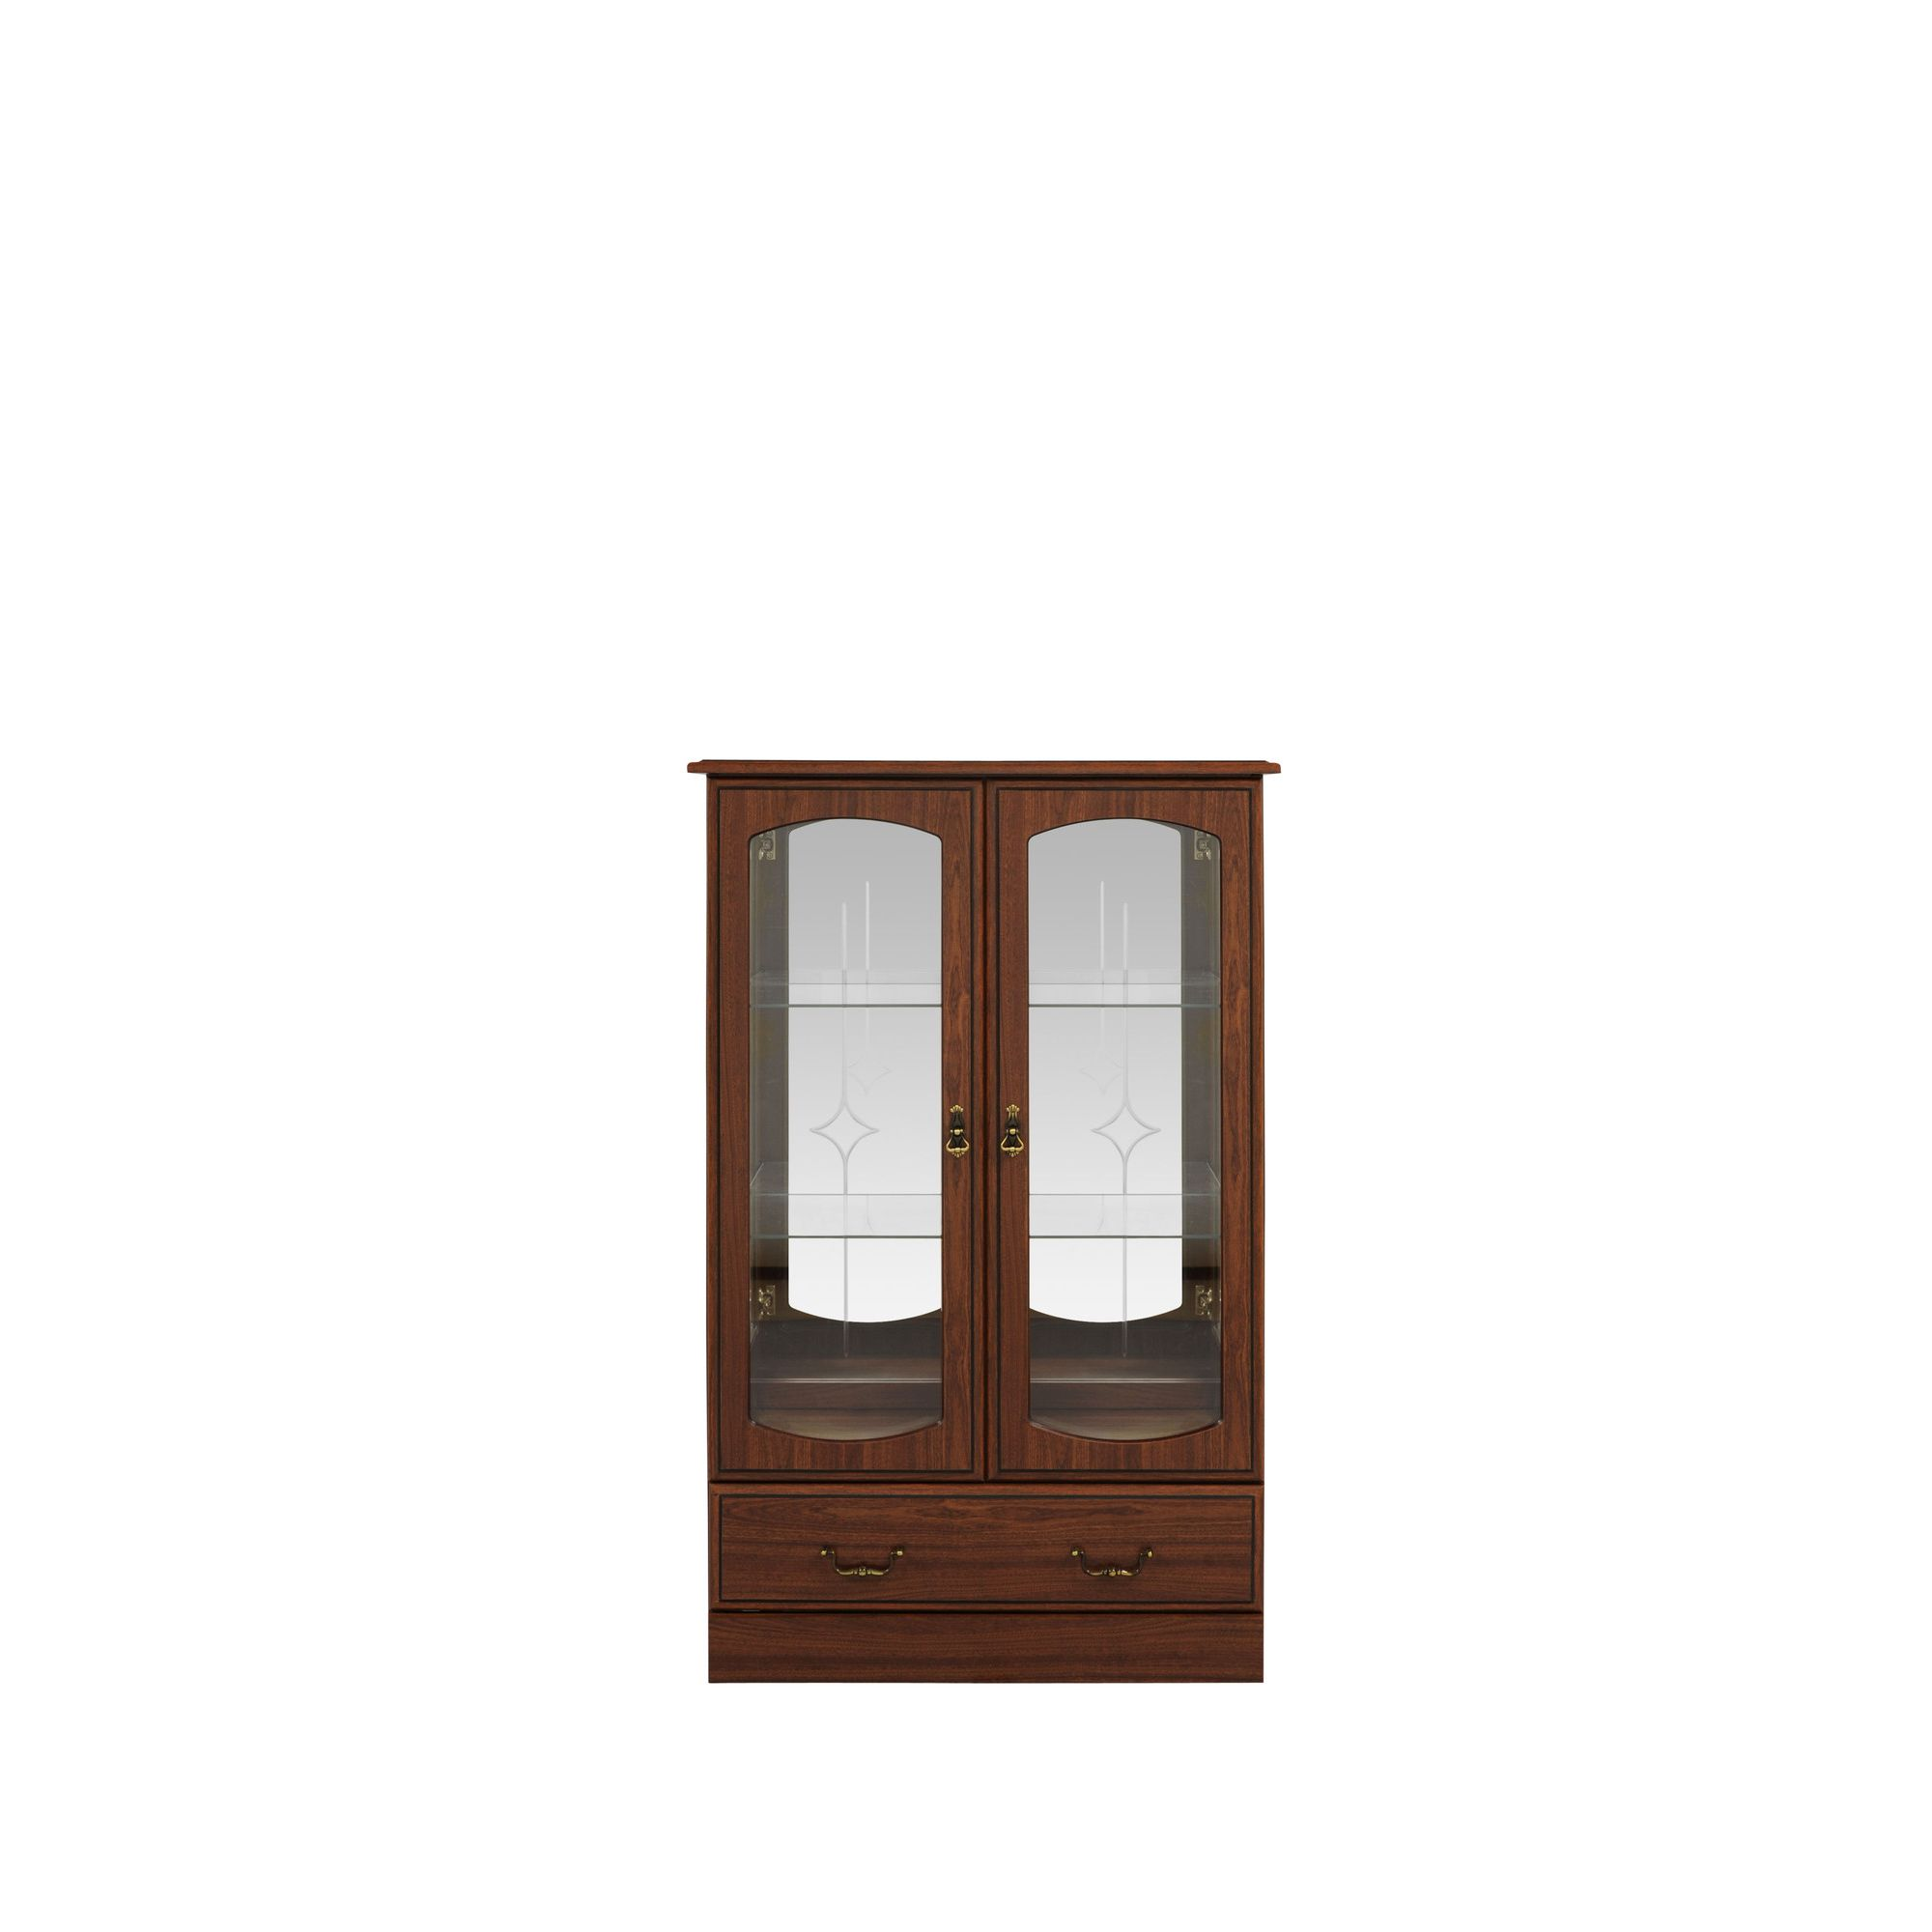 Caxton Byron Low Display Cabinet in Mahogany at Tesco Direct